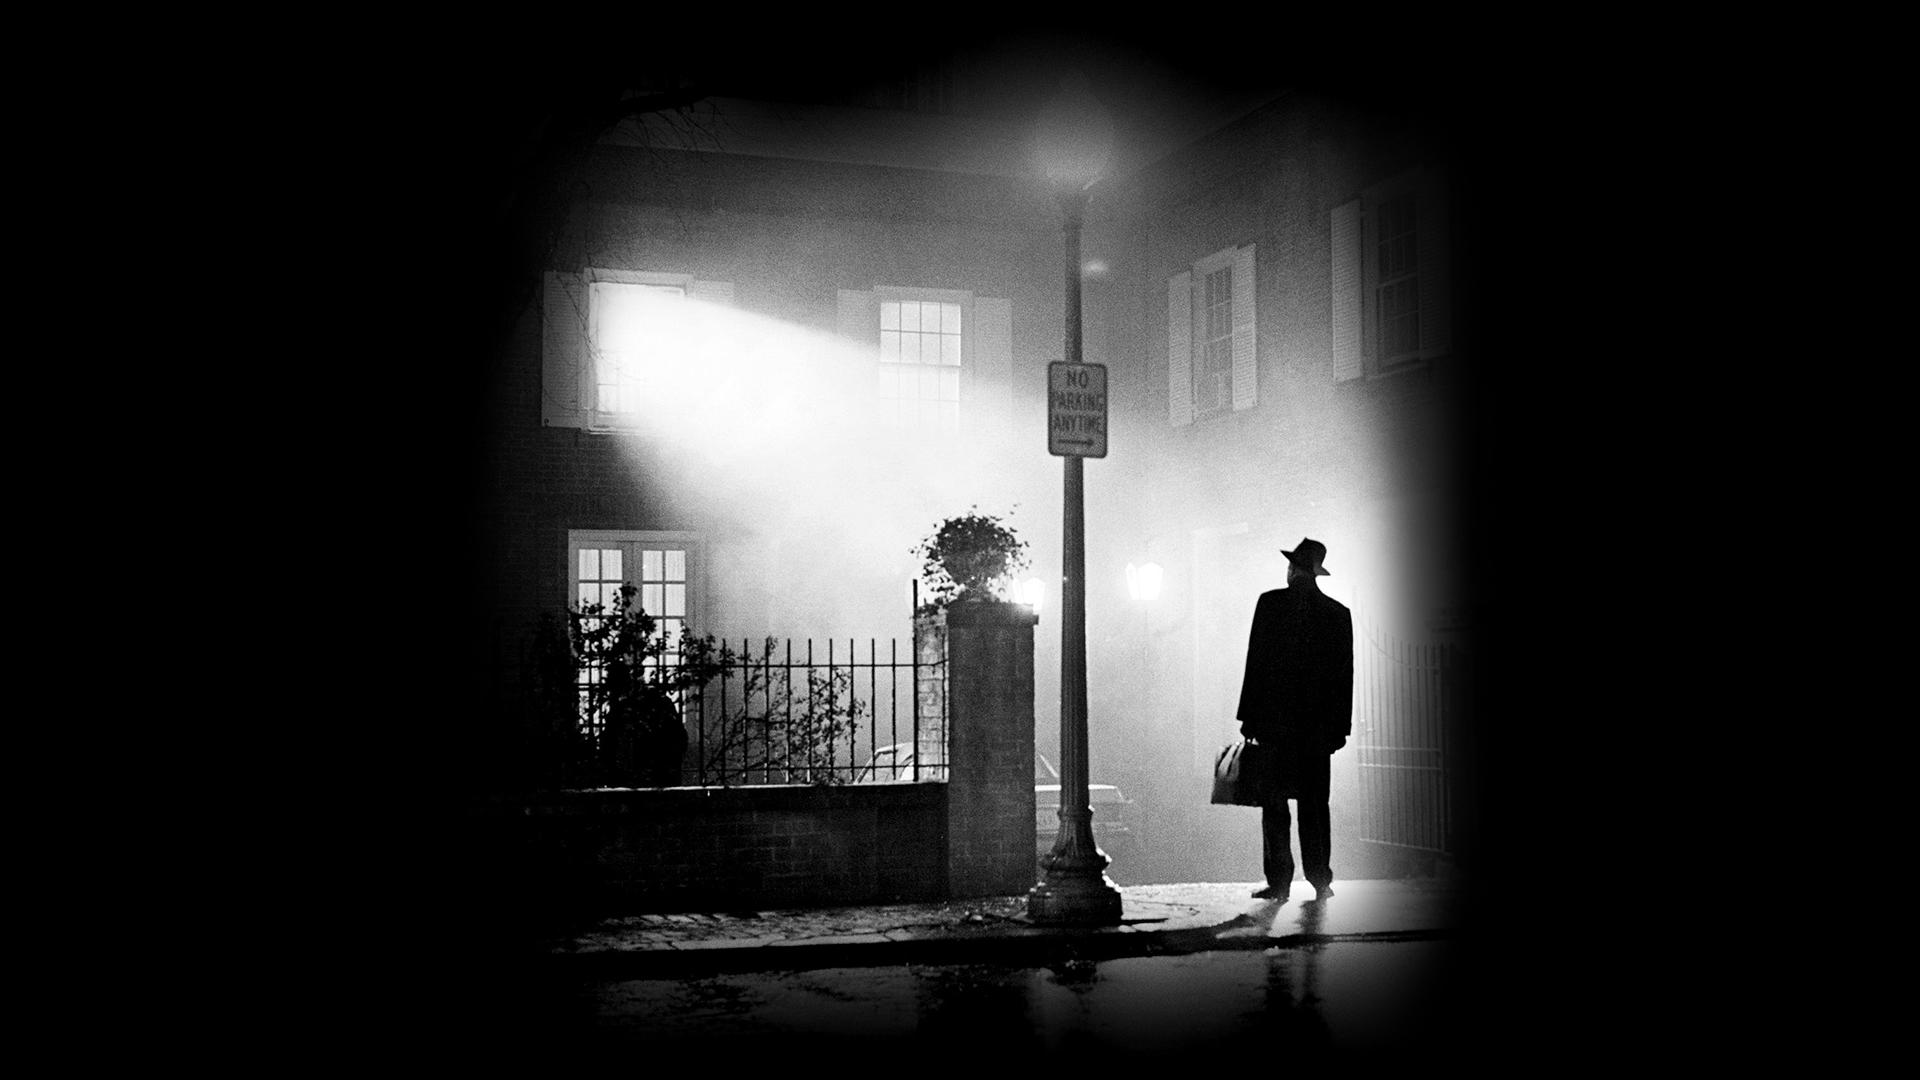 The Exorcist Wallpapers HD Download 1920x1080